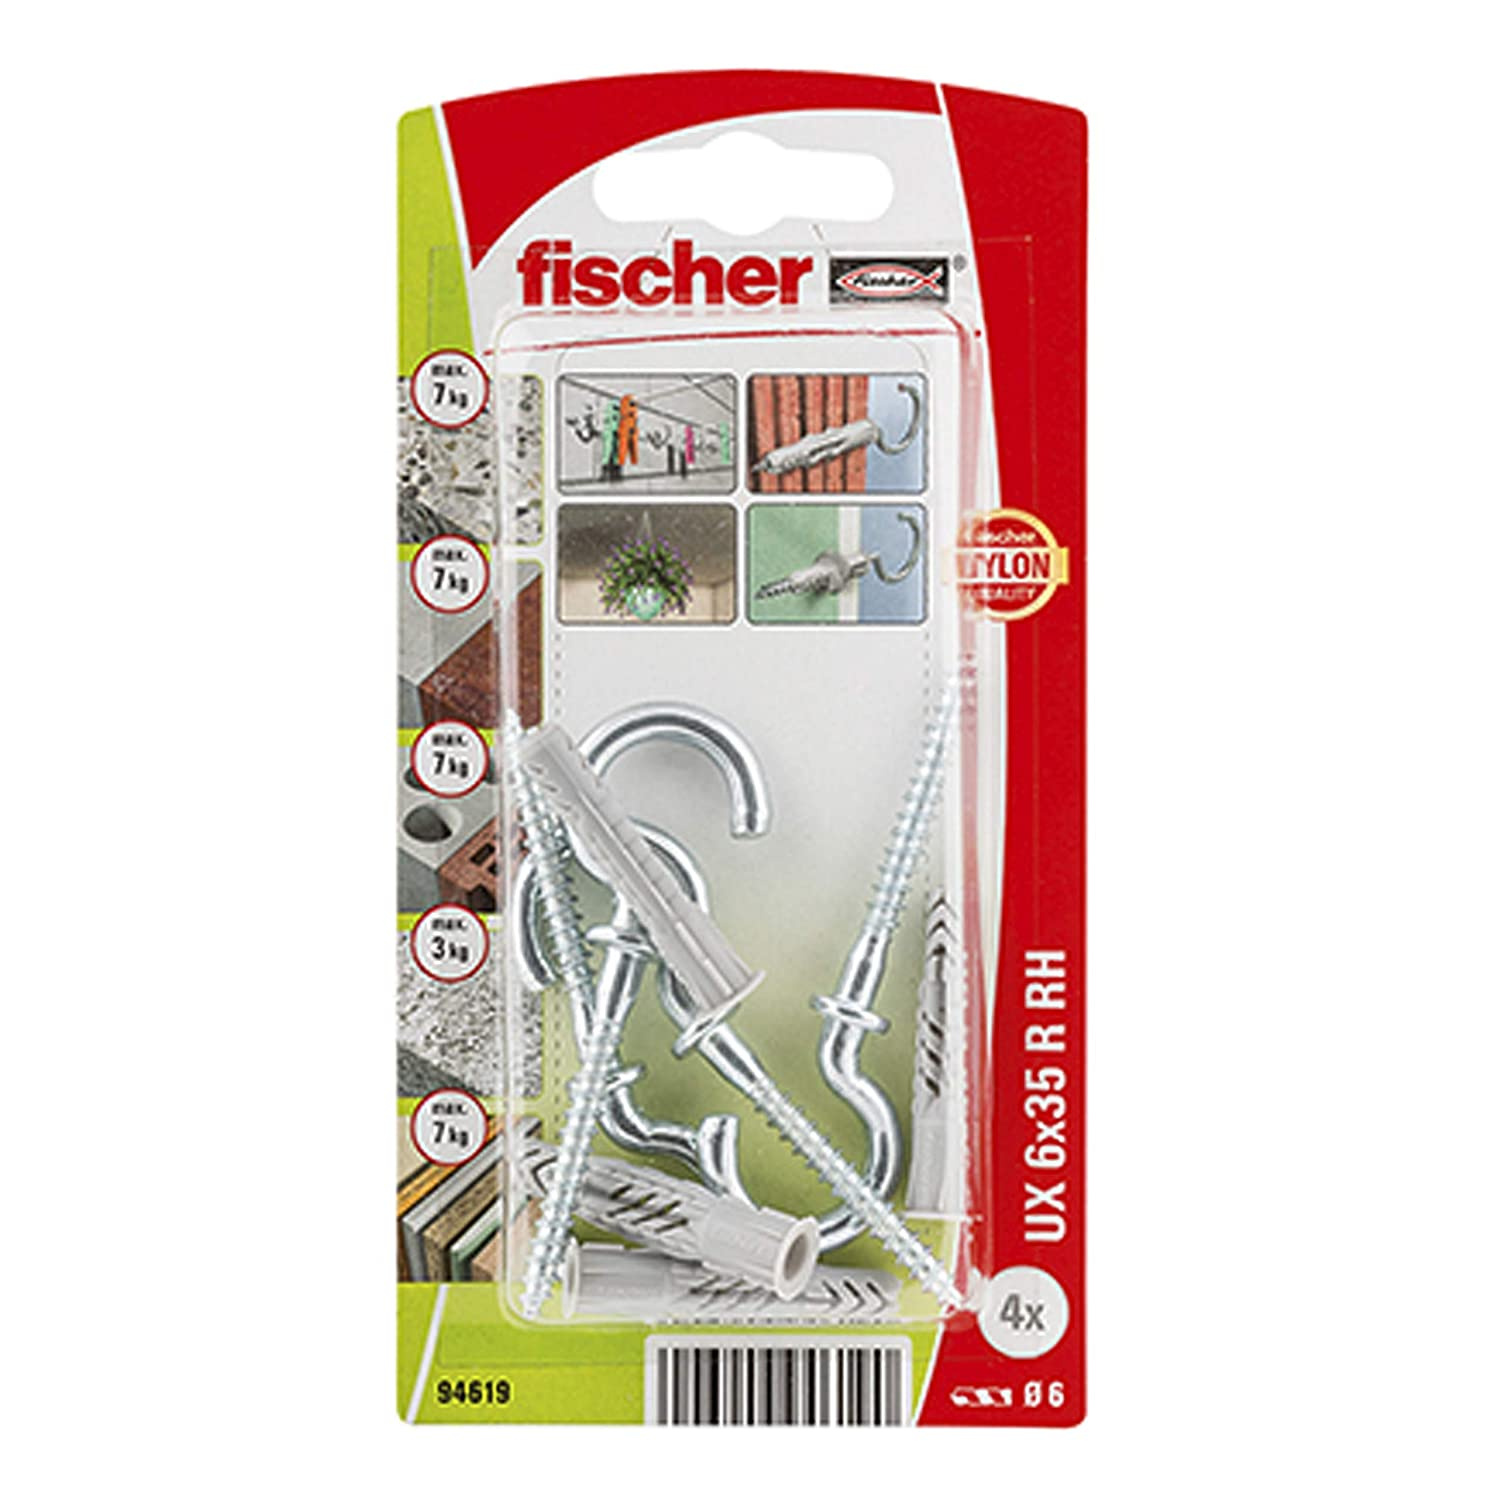 fischer 94619 UX SEAL limited product Gray Wallplug Ranking TOP3